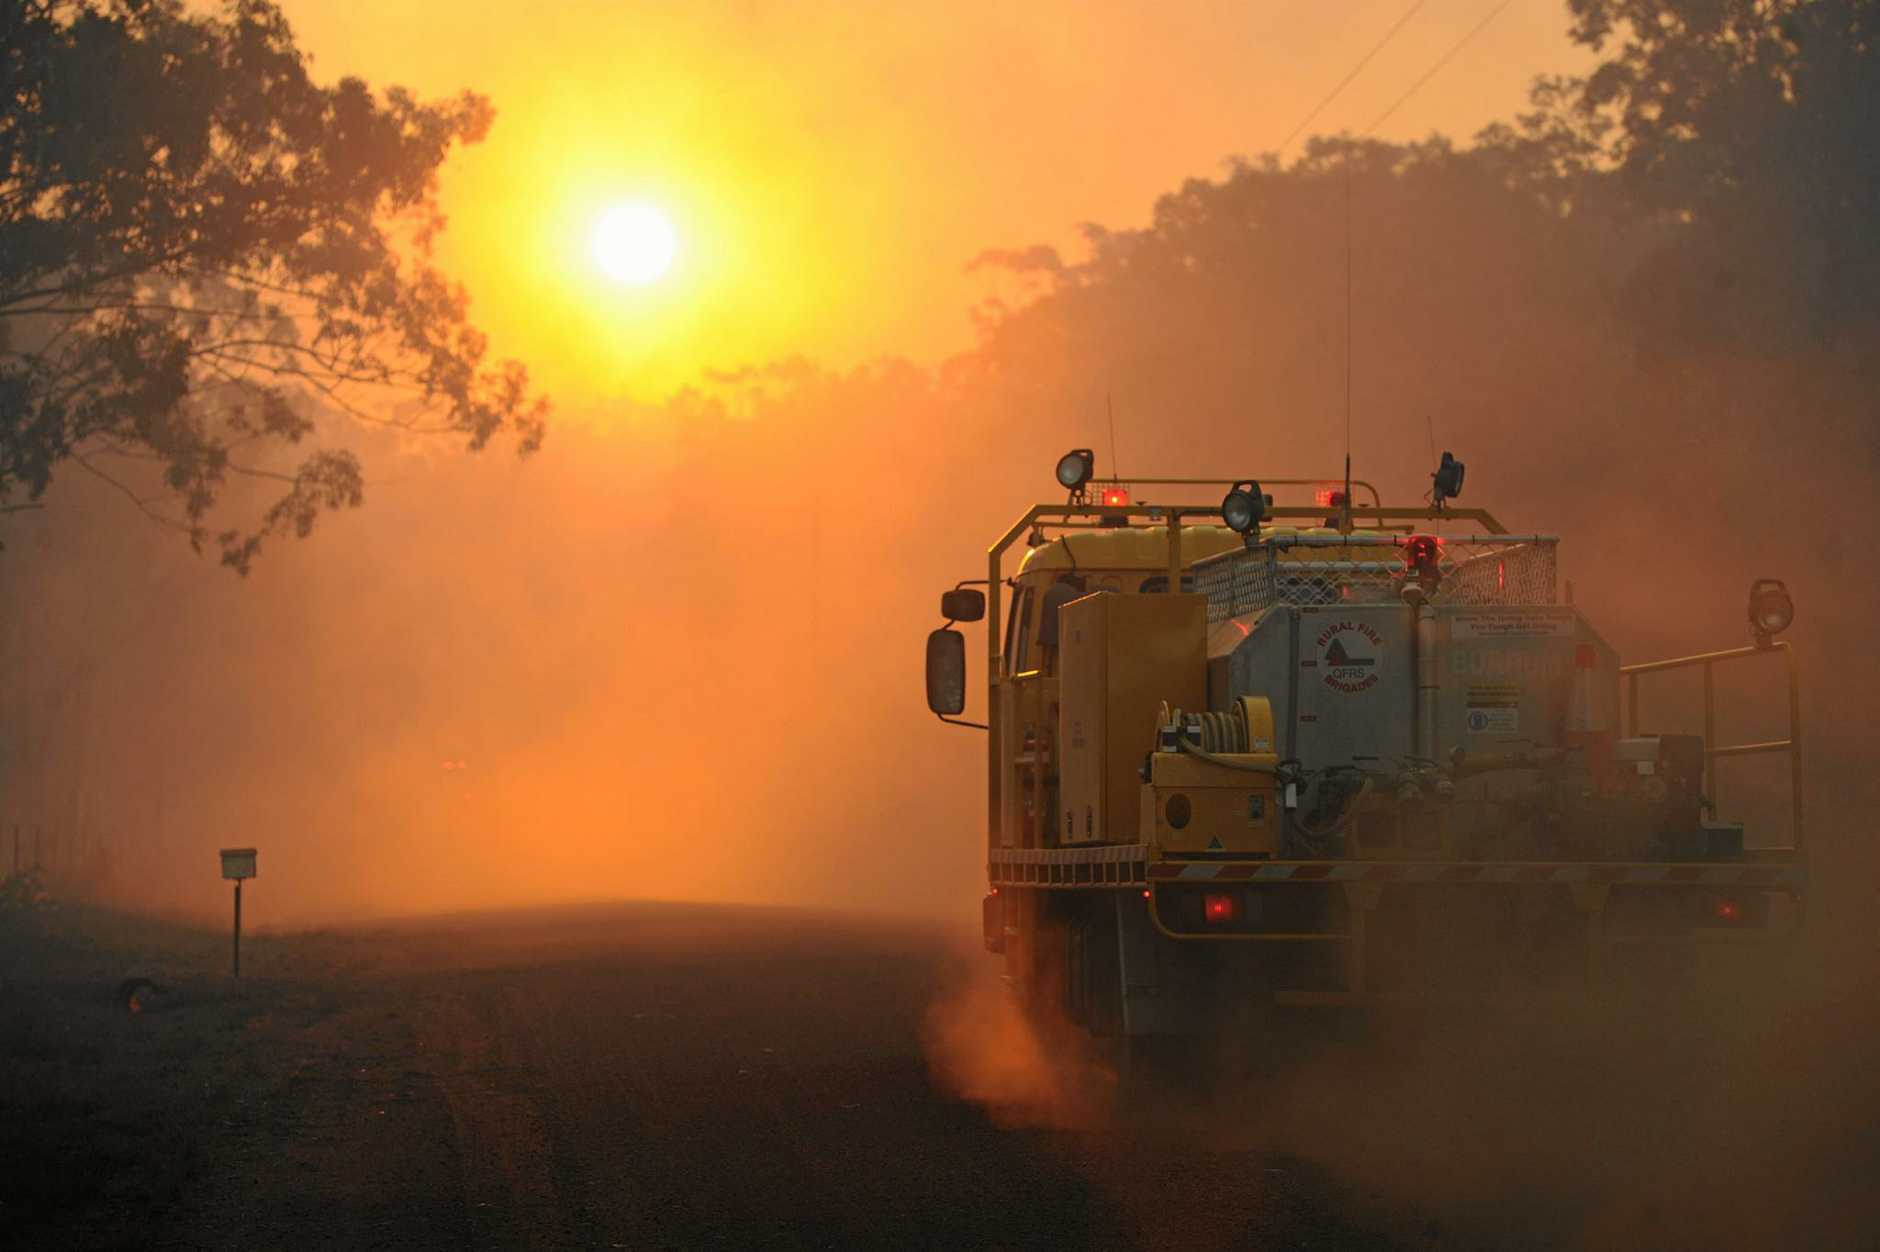 The Rural Fire Service has warned sparking machinery and out-of-control burns have already started bushfires this season.